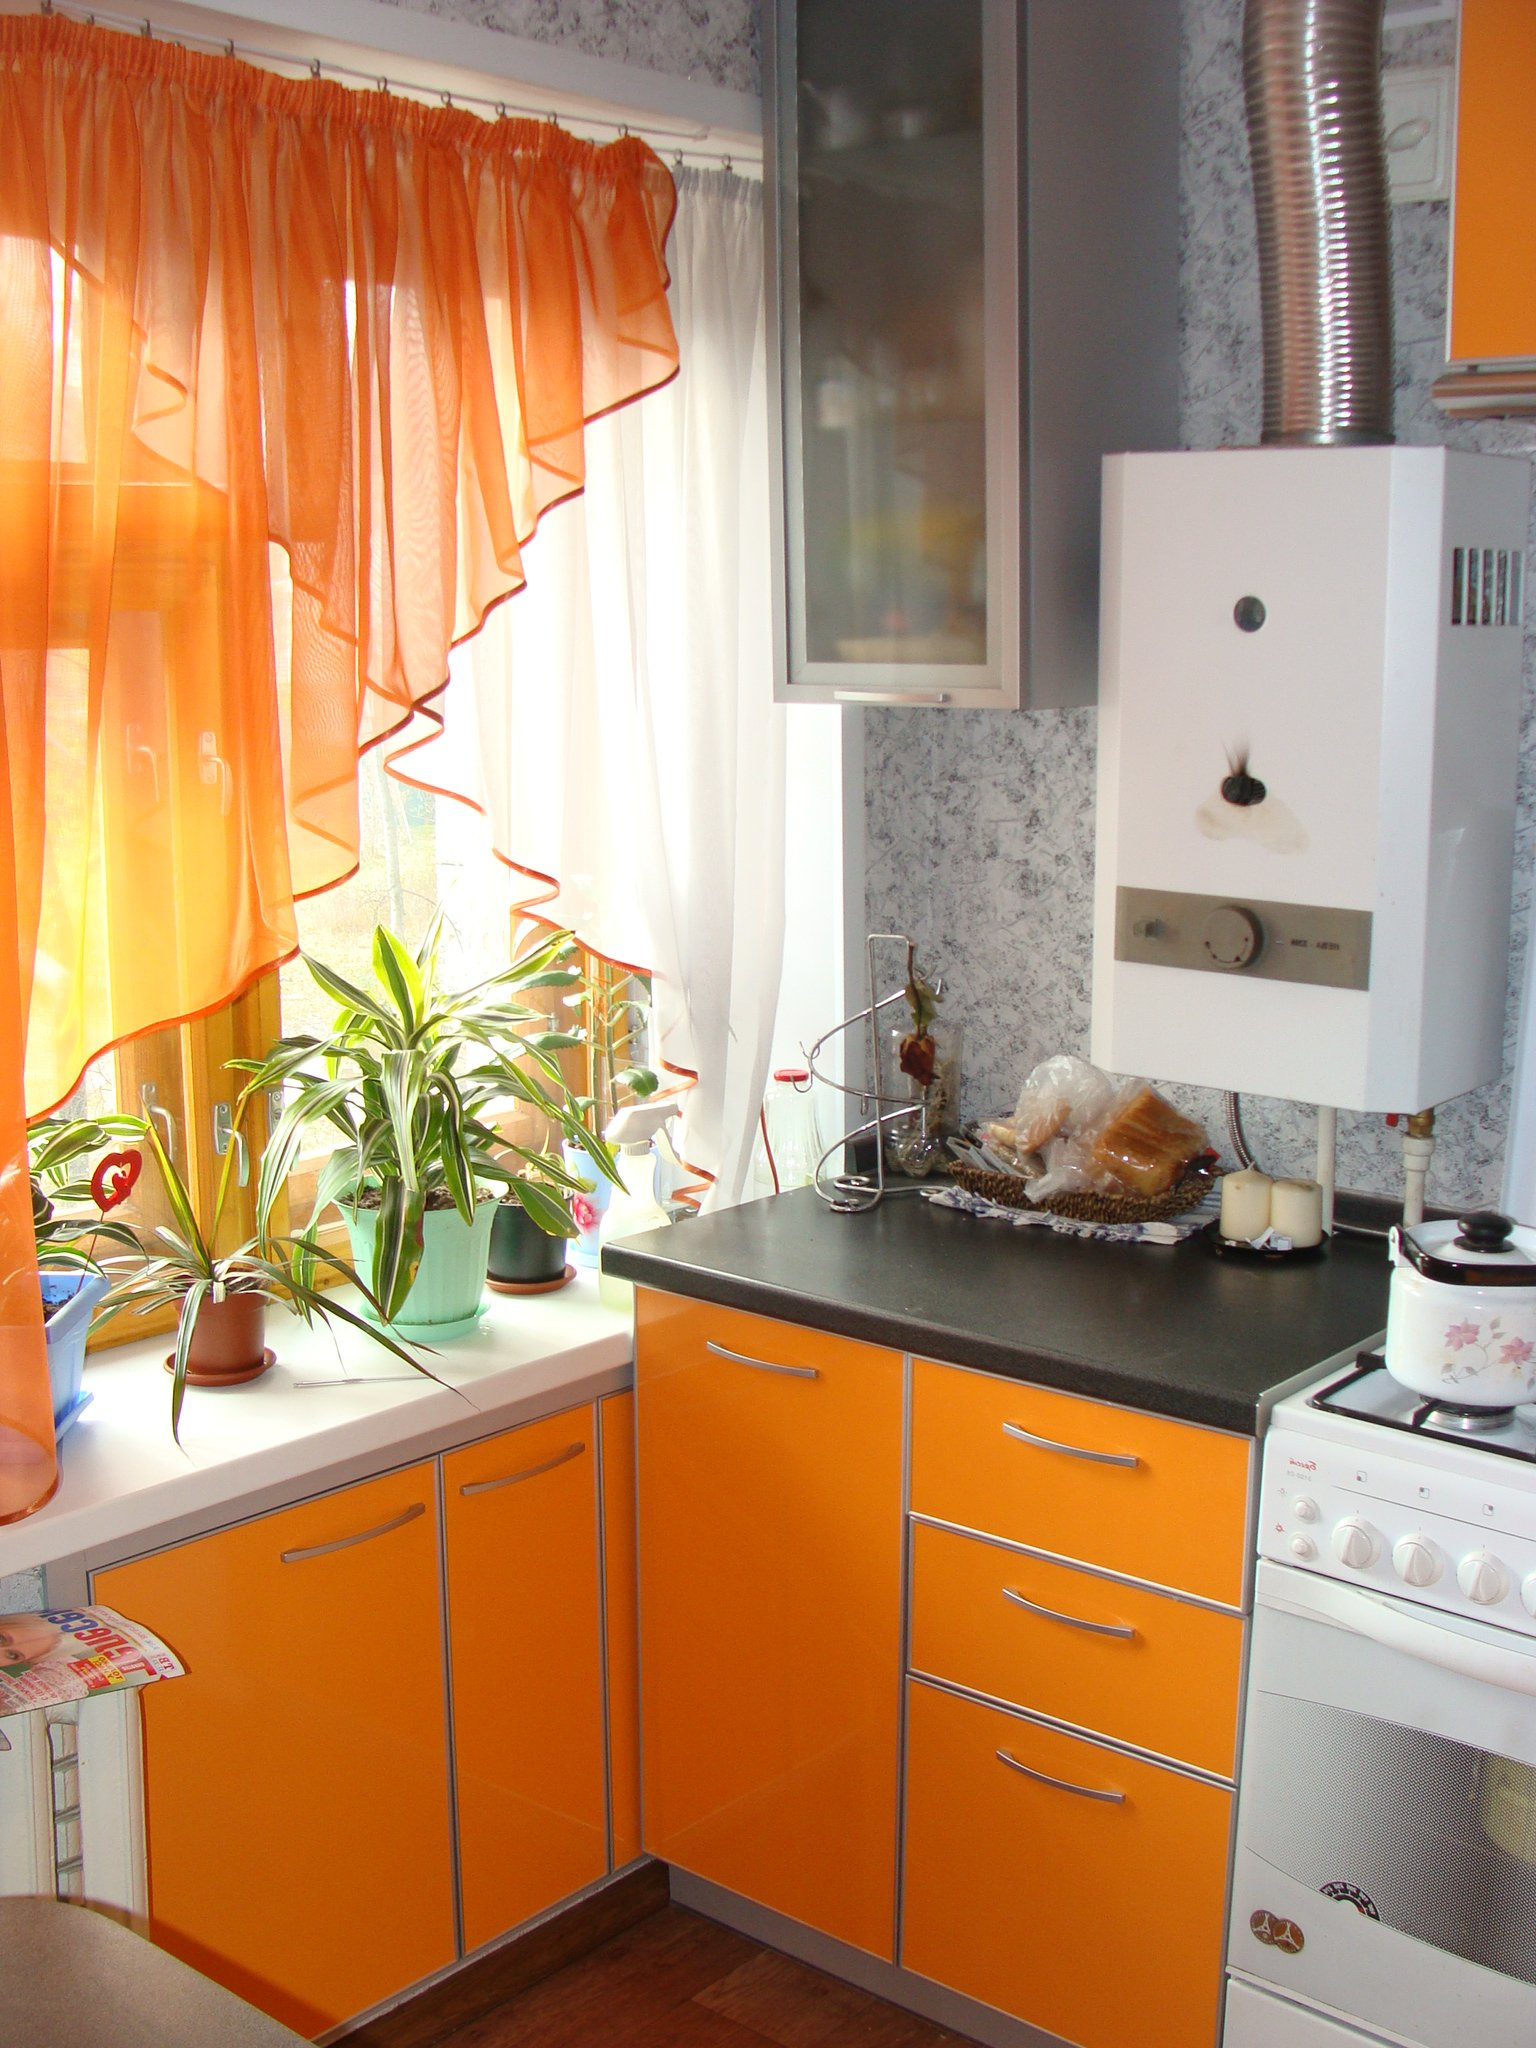 Brilliant kitchen furniture for small spaces to maximize the.